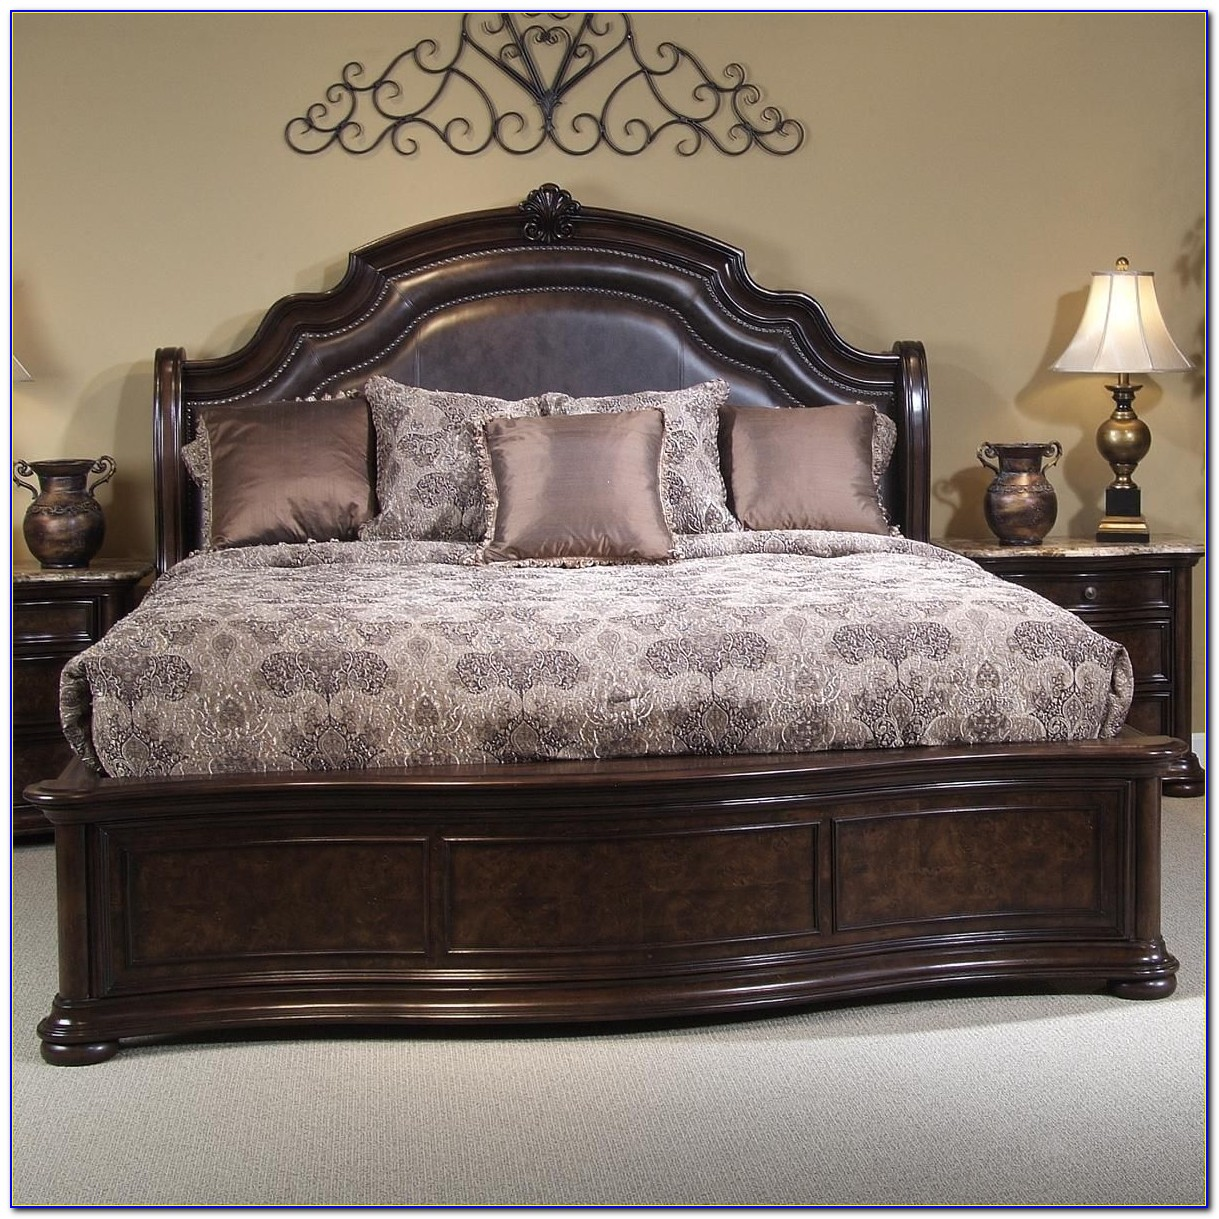 Wood Bed Frame With Leather Headboard